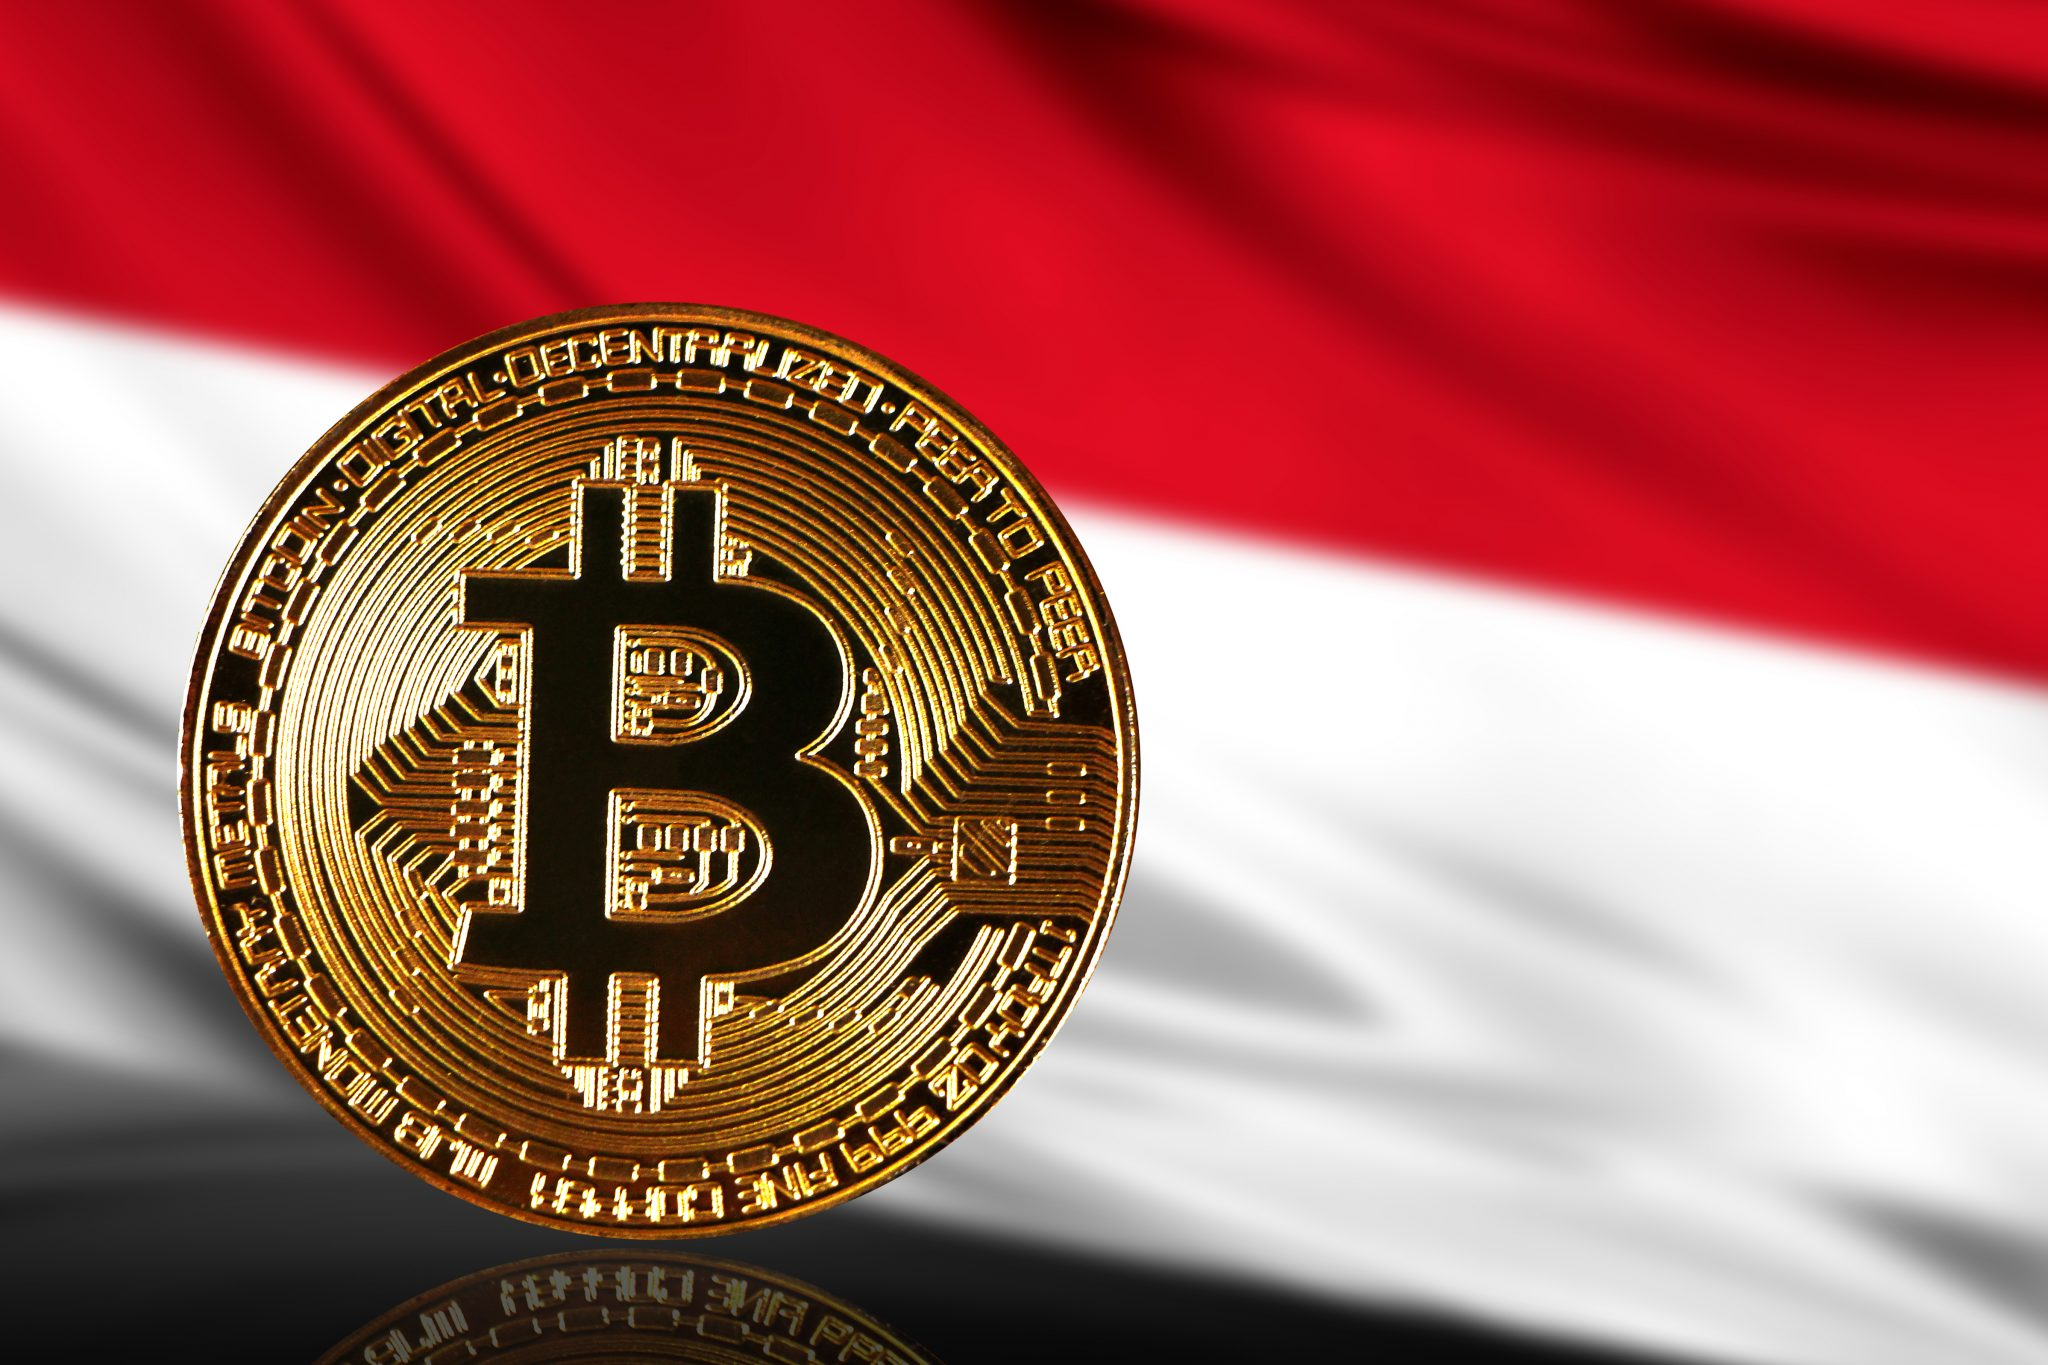 gold coin bitcoin on a background of a flag Indonesia